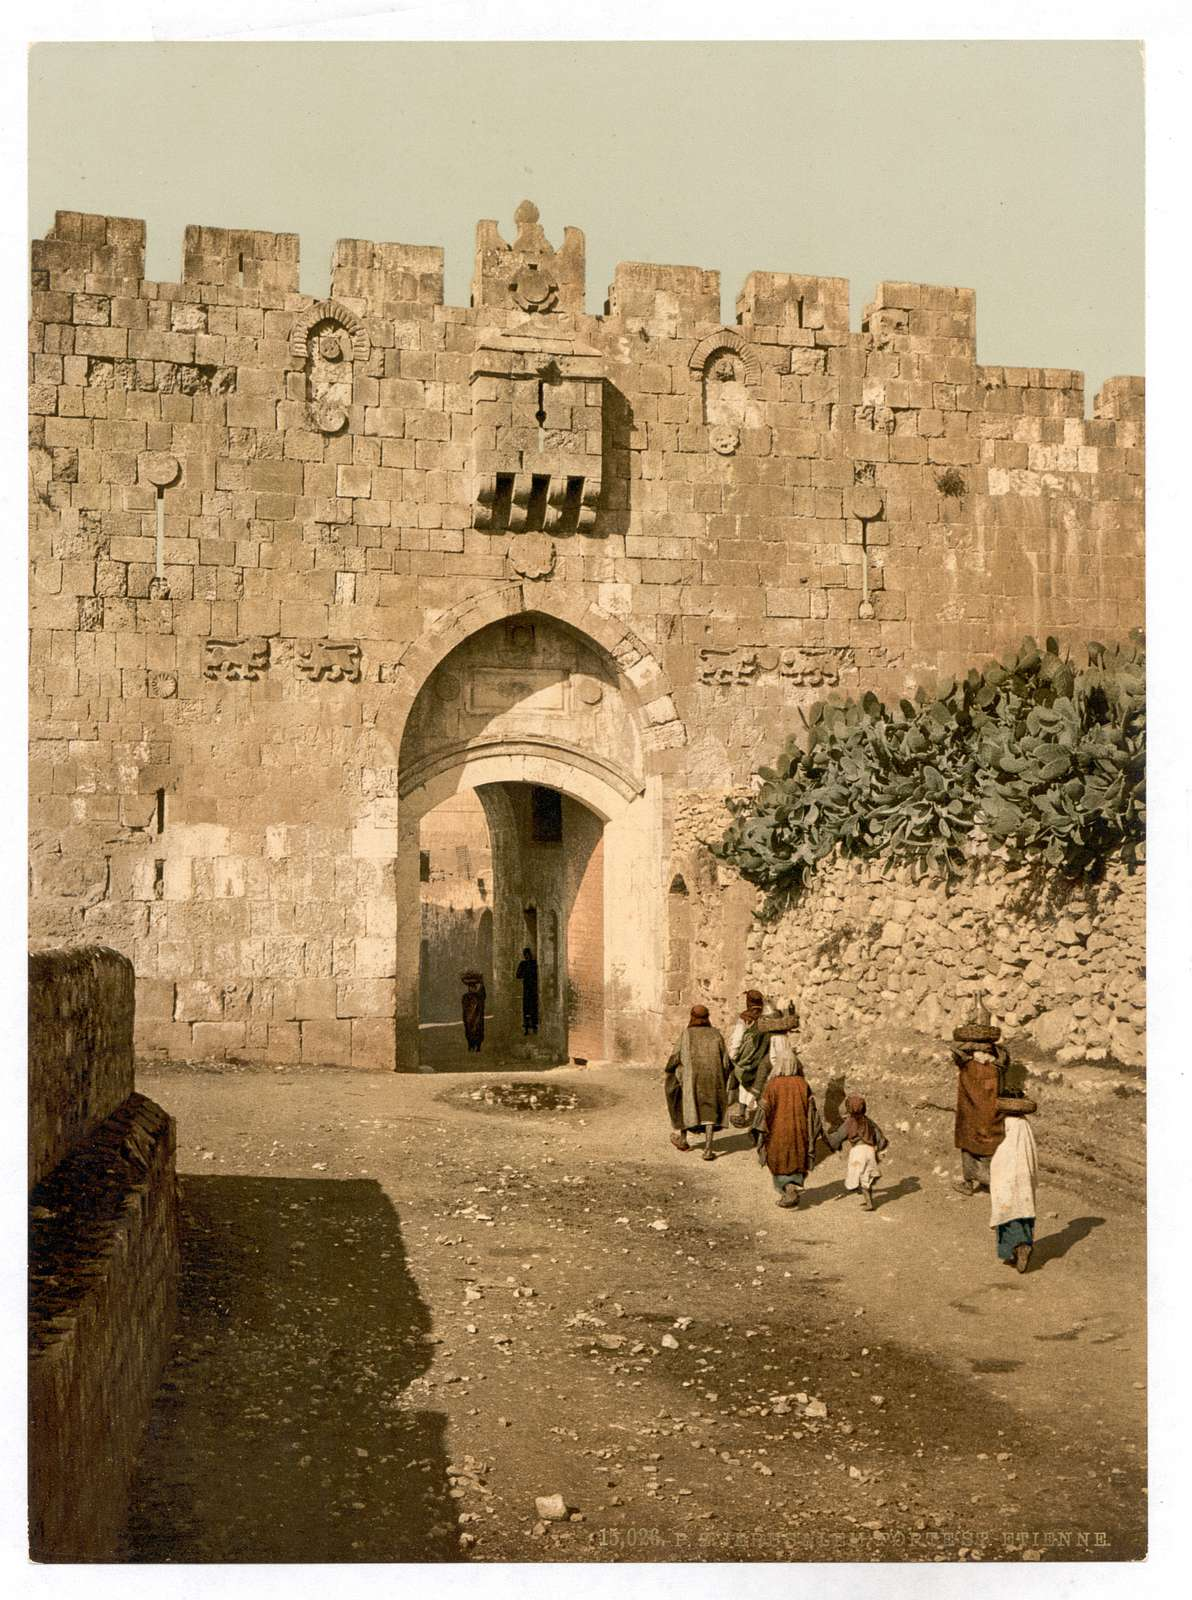 [St. Stephen's Gate, Jerusalem, Holy Land]